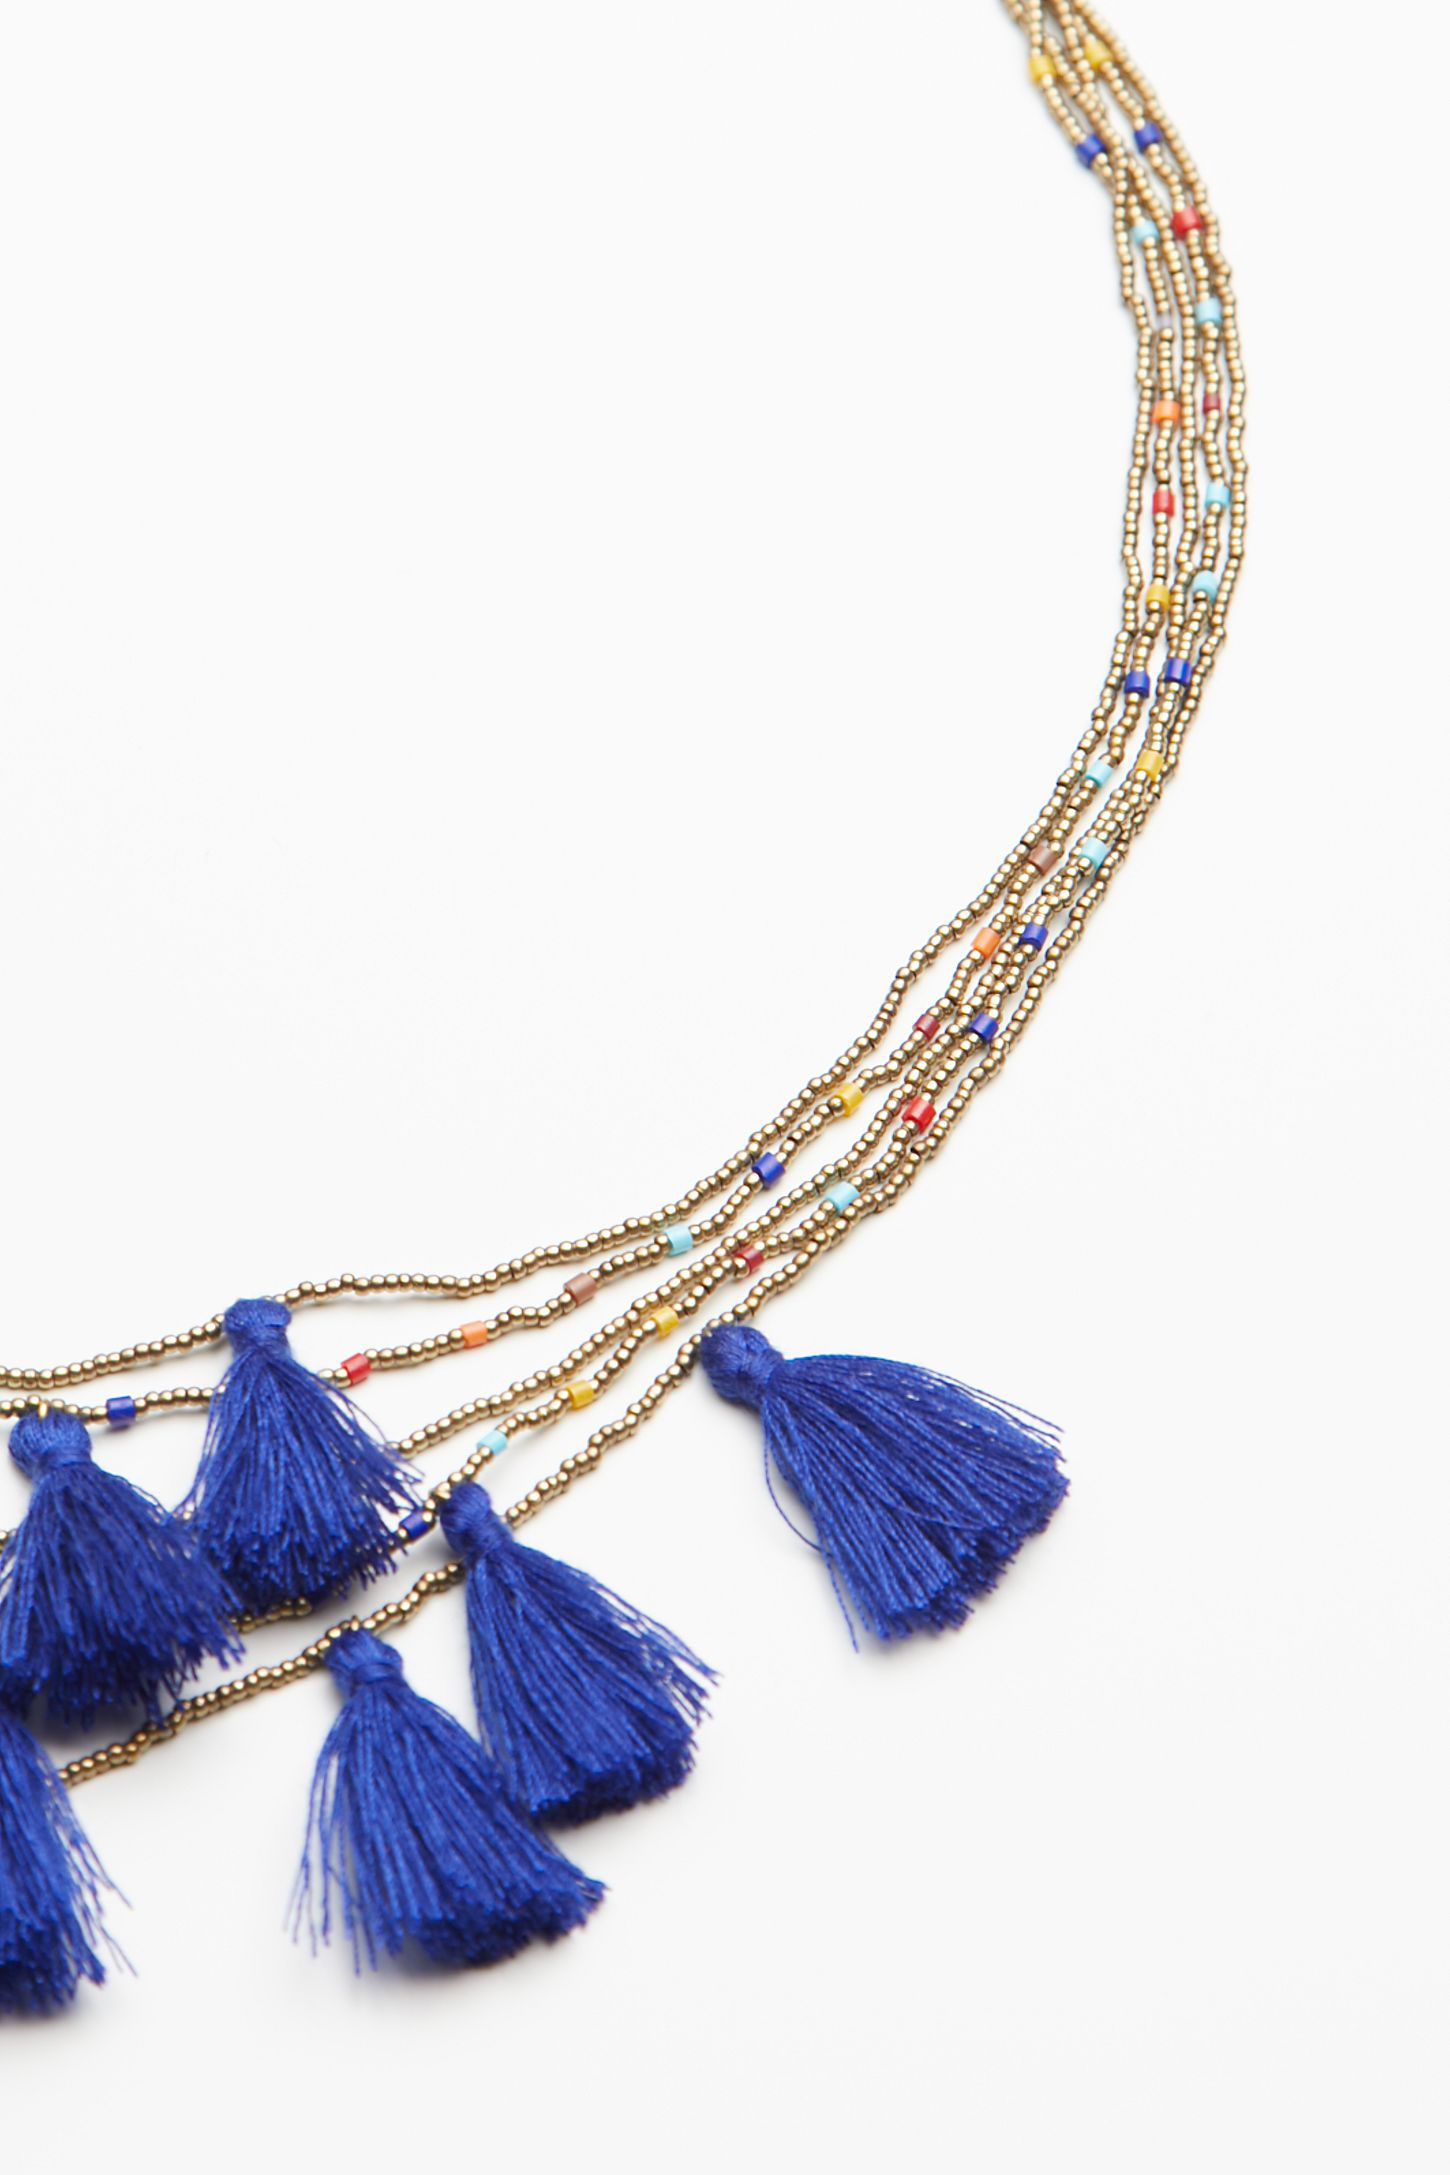 necklace tassel product long alternate os view size marrakesh necklaces